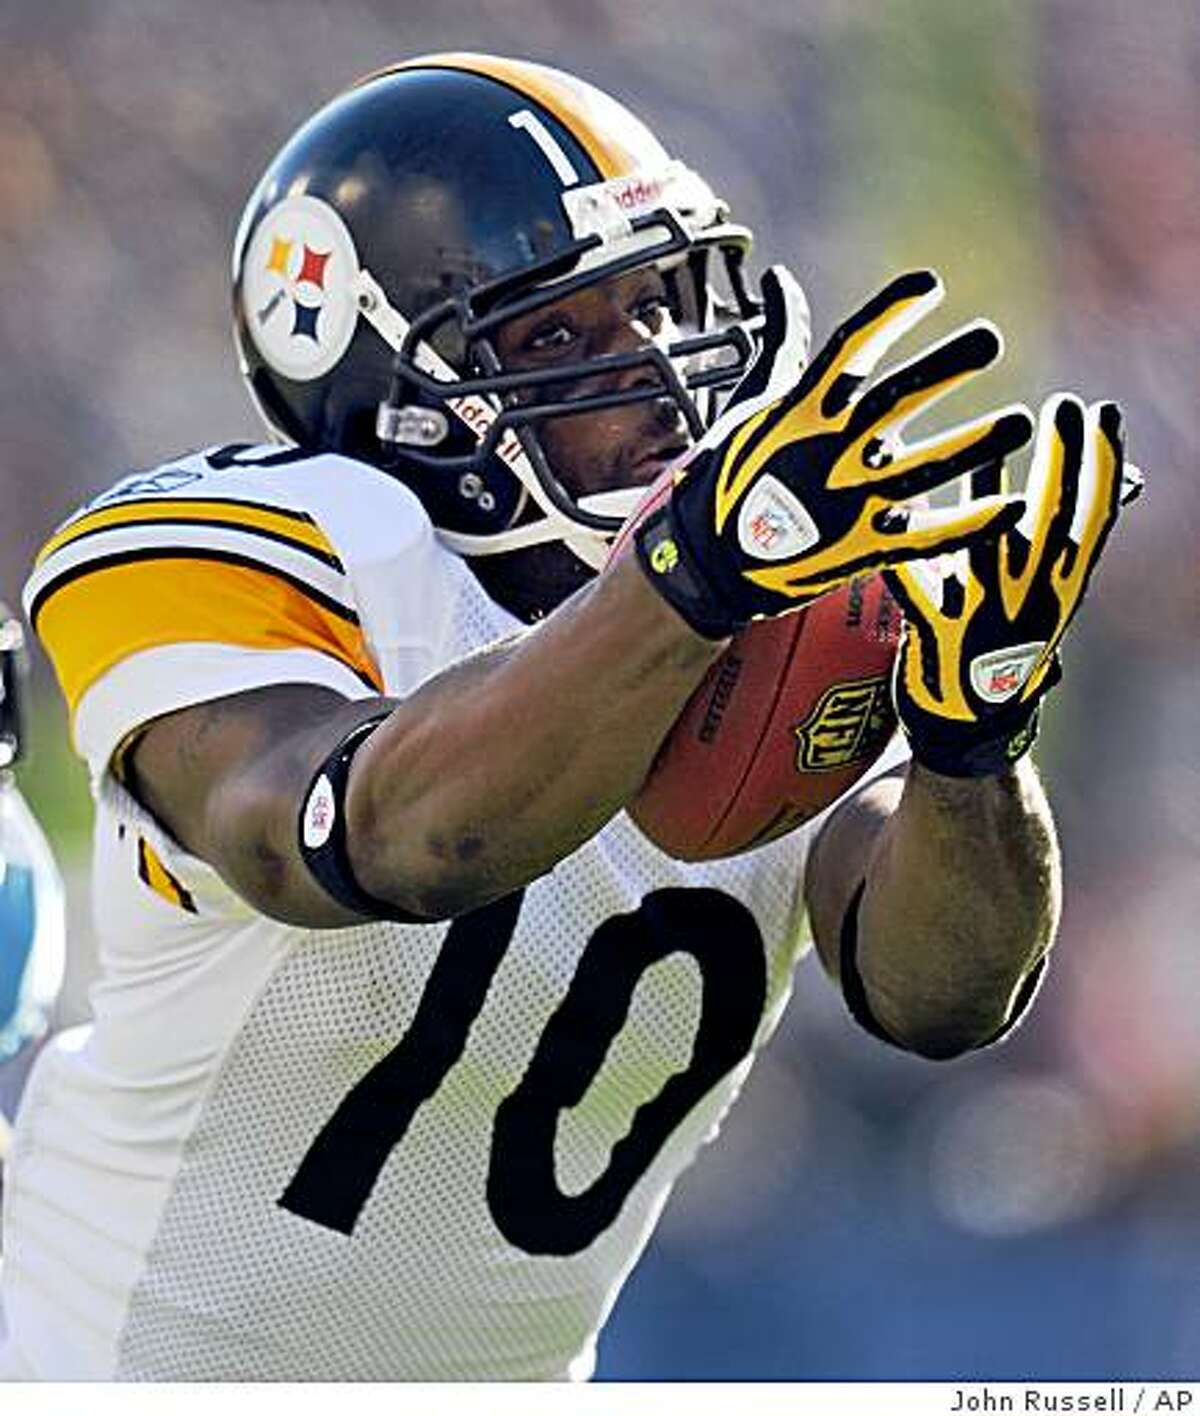 ** FILE ** In this Dec. 21, 2008 file photo, Pittsburgh Steelers wide receiver Santonio Holmes (10) catches a 31-yard touchdown pass against the Tennessee Titans during the second quarter of an NFL football game in Nashville, Tenn. Holmes reveals a childhood secret: He spent a year selling drugs on a small-town Florida street corner. He intentionally chose to use the biggest of stages, the Super Bowl, to make public the mistakes of his youth in hopes of persuading at-risk children to take a better course with their lives. (AP Photo/John Russell, File)